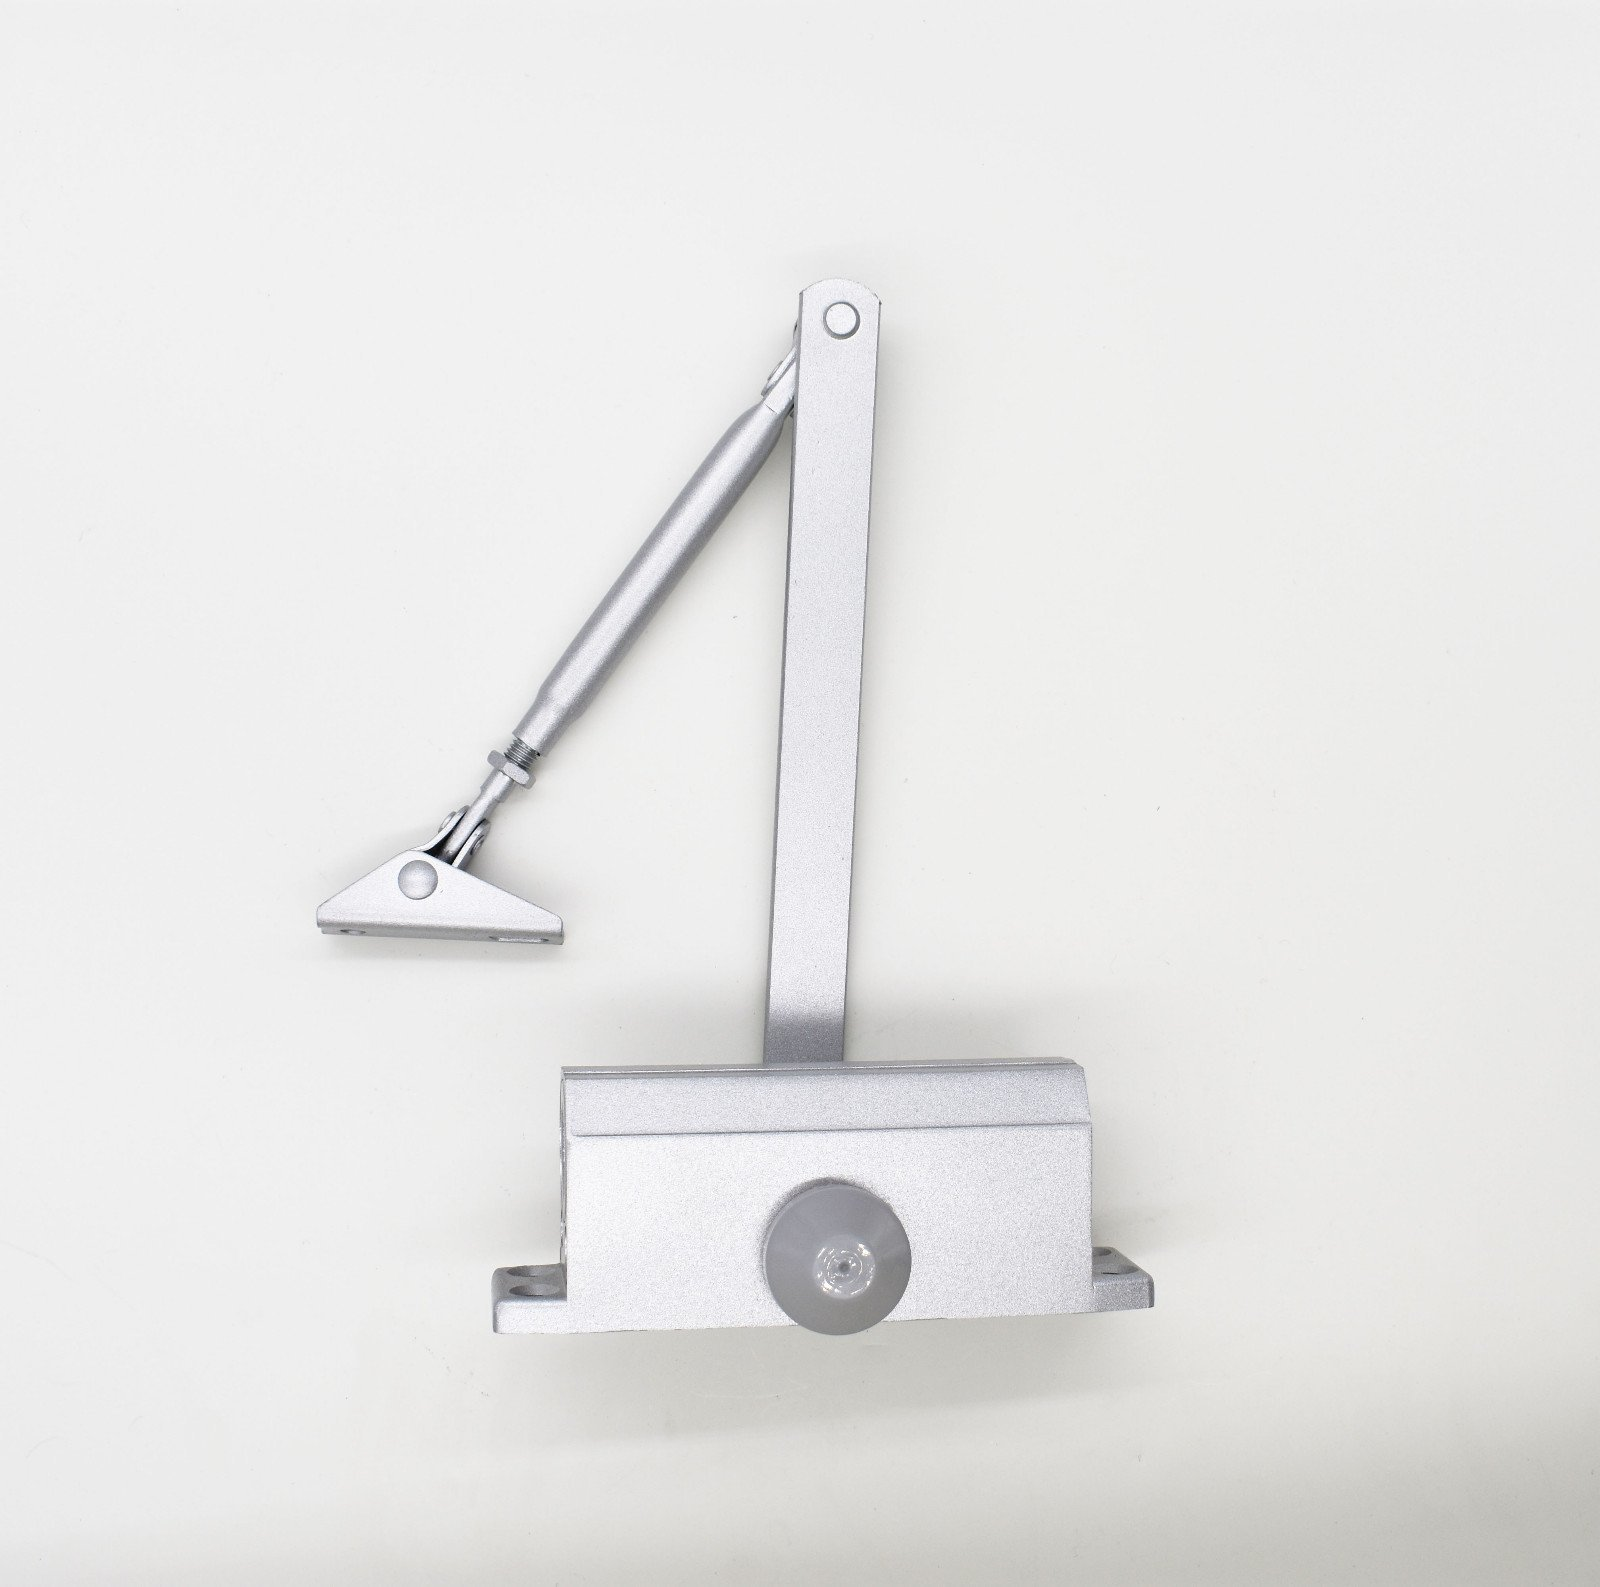 Kerui Furniture Hardware Brand threespeed square automatic door closer price hidden spring